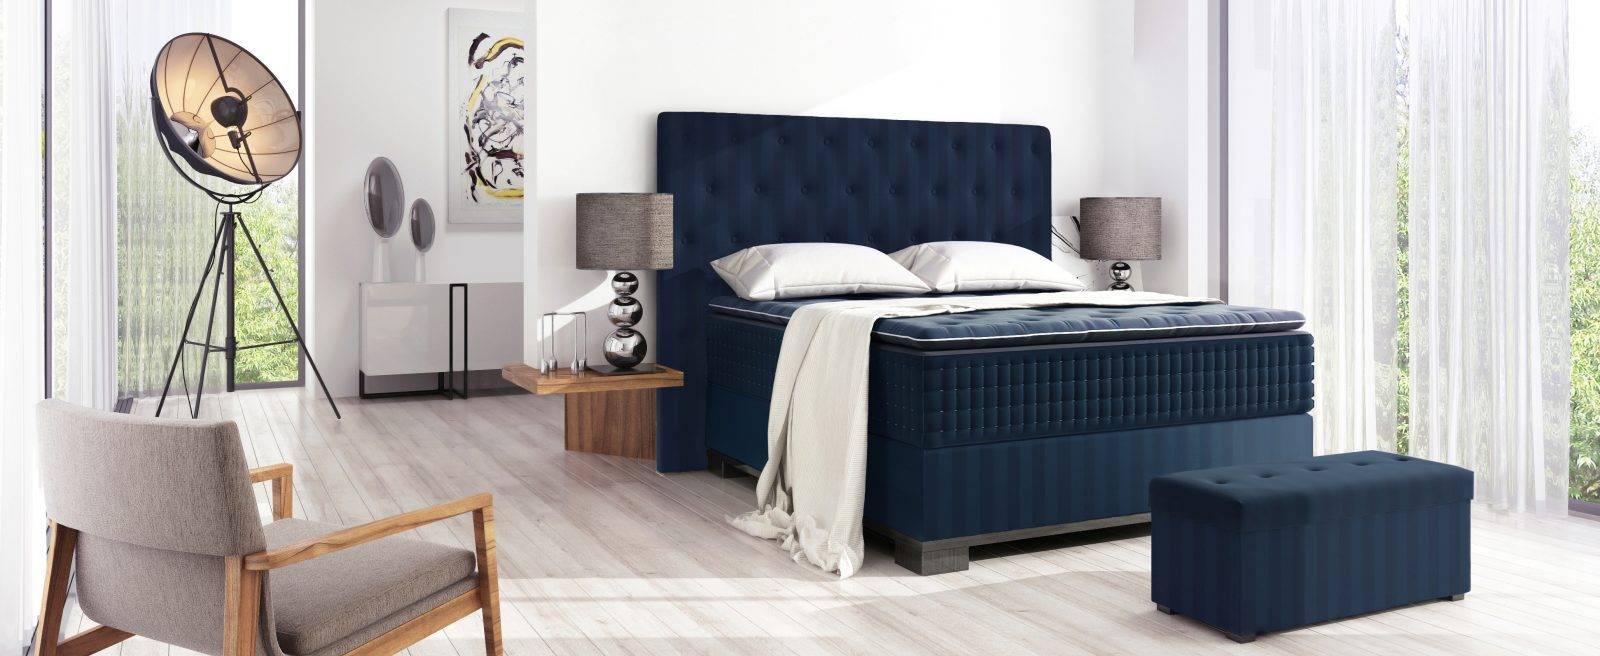 pauly-beds-continental-luxury-mattress-sissi-small